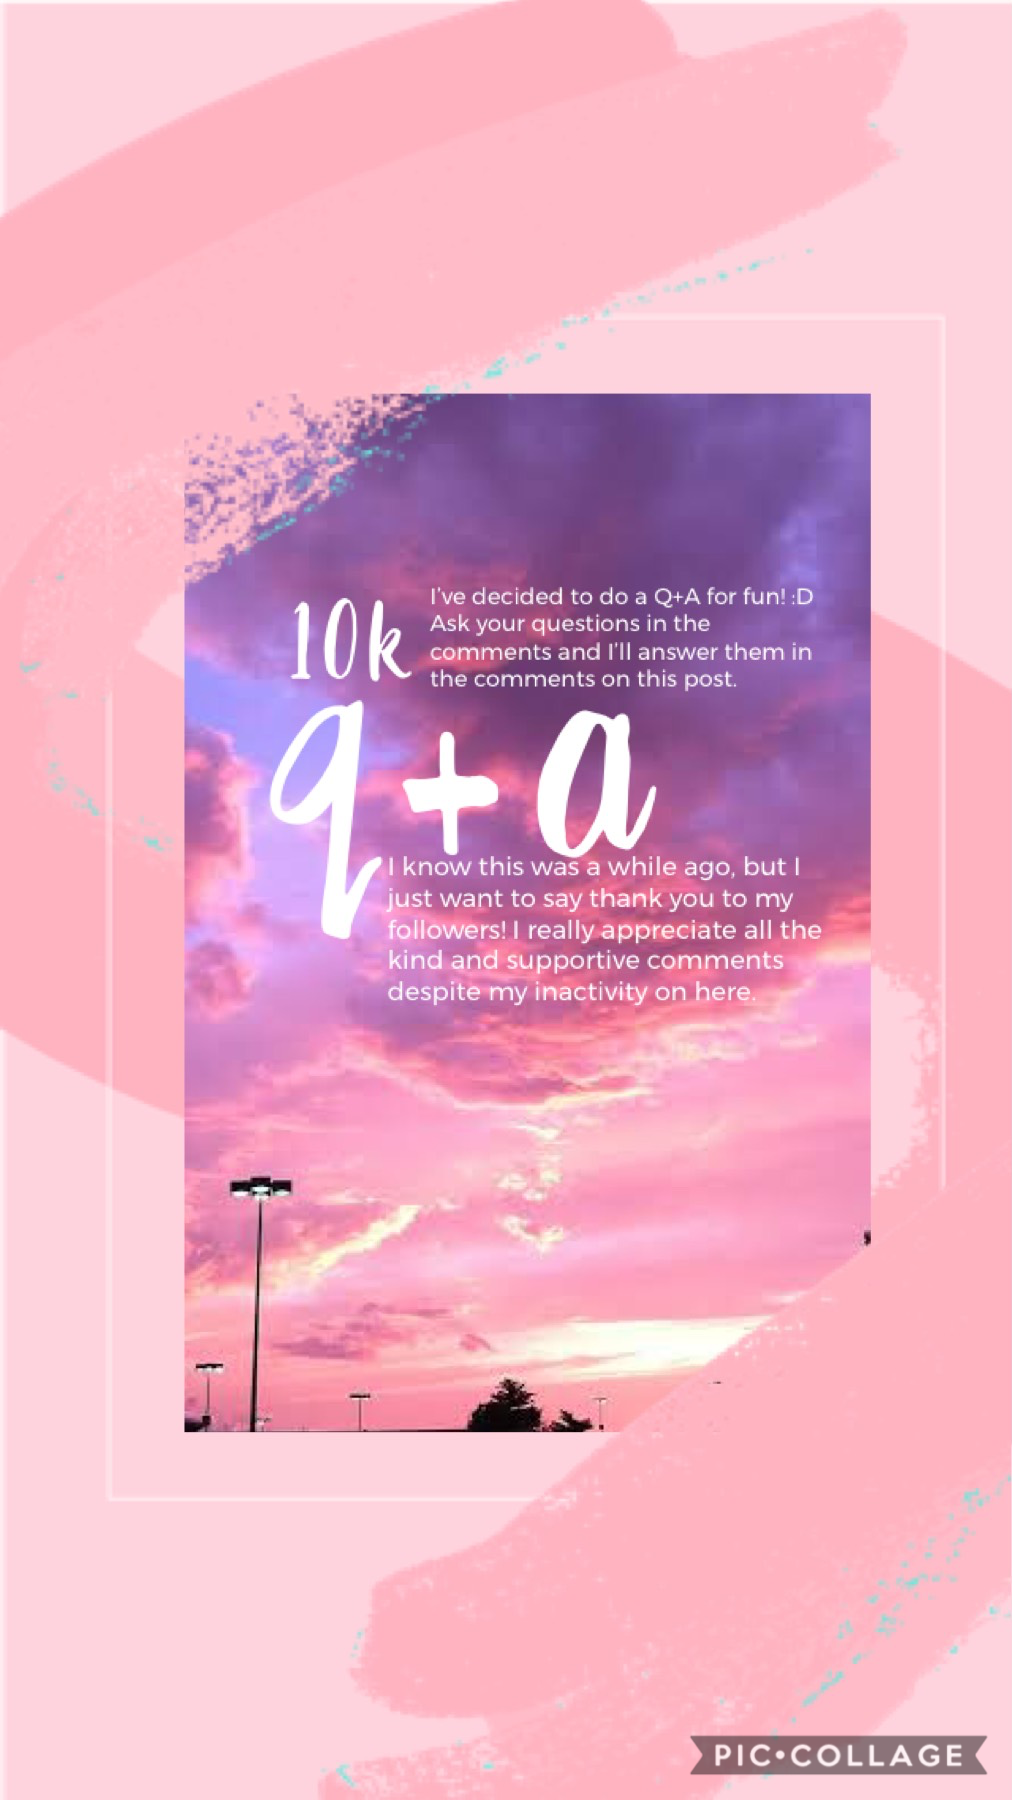 A q+a in celebration of 10k! (o^^o) Needless to say, I won't be answering anything too personal so don't bother with those kinds of questions. Also, remember to check back after you comment to see my answers! And feel free to give your own answers for the